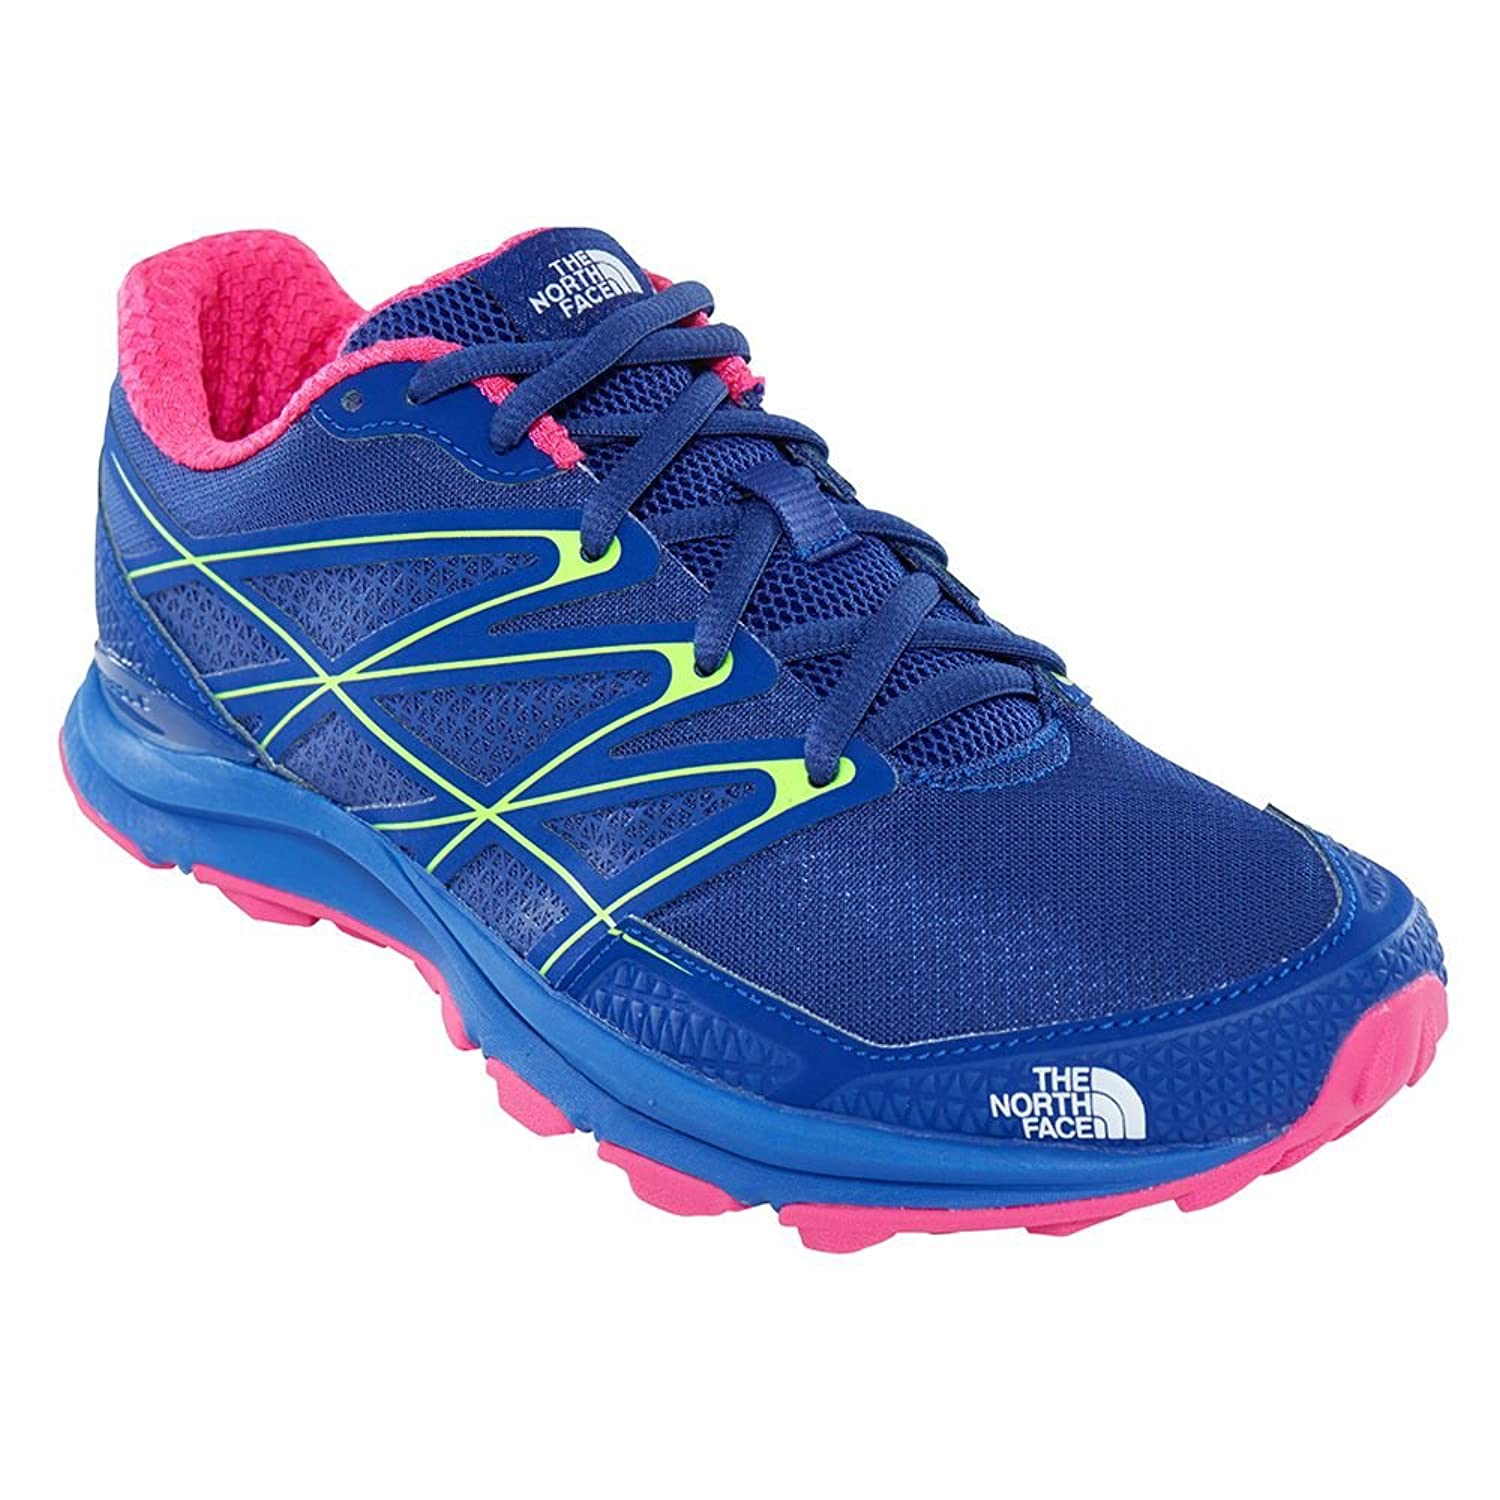 The North Face Damen W Litewave Endurance Fitnessschuhe Mehrfarbig (Sodalite Blue/Glo Pink 3tr)